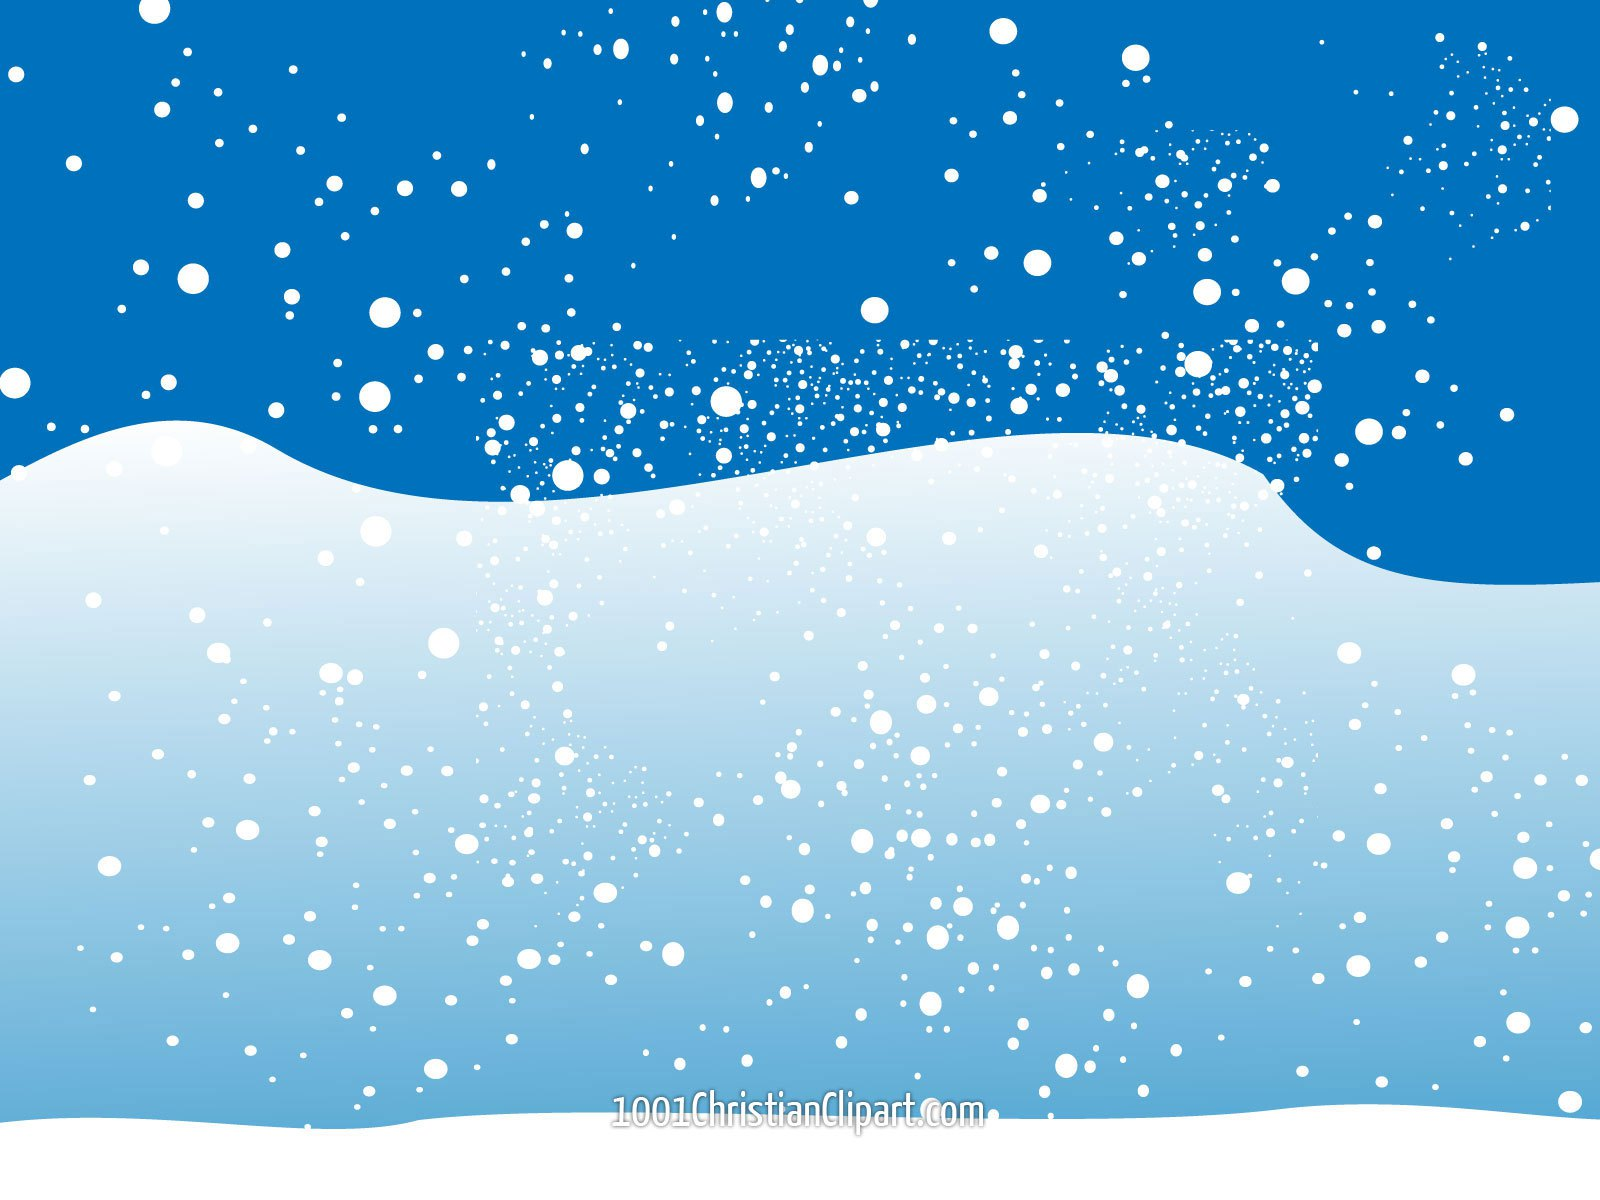 Clip Art Snow Clip Art snow computer wallpaper clipart kid blue piano theme for powerpoint backgrounds desktop or